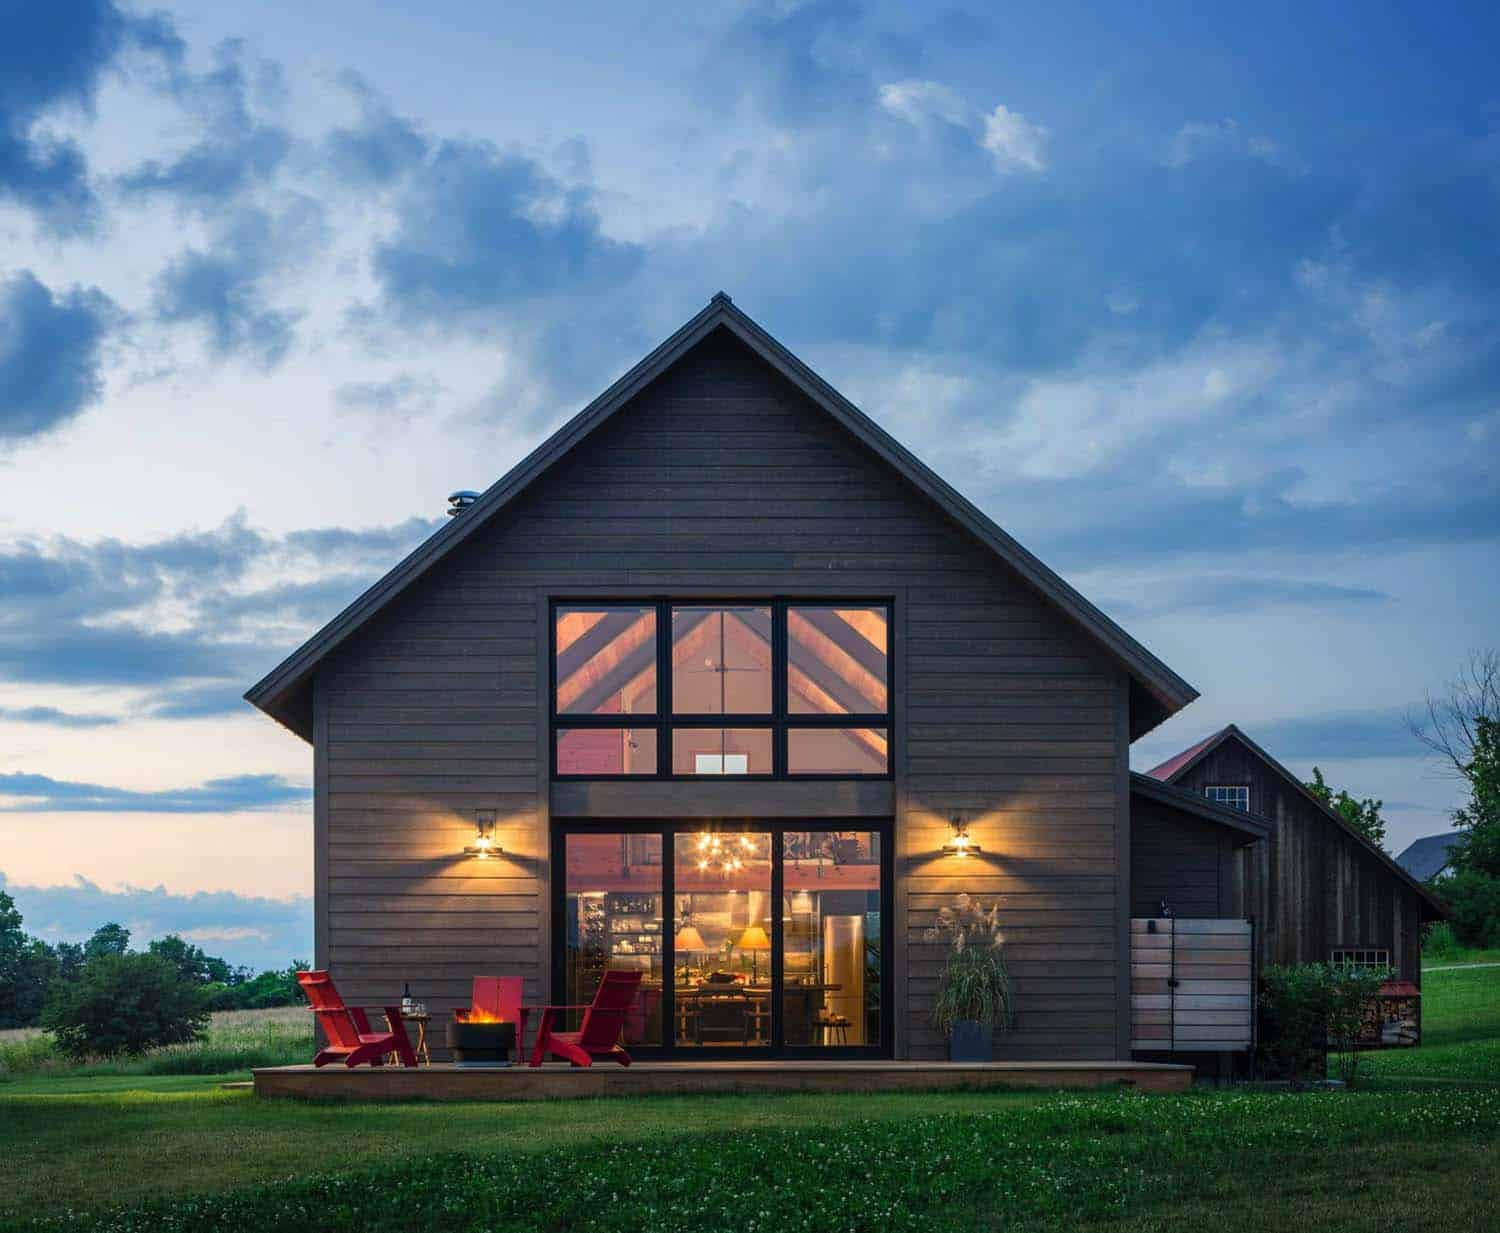 Small and cozy modern barn house getaway in vermont for Barn home designs